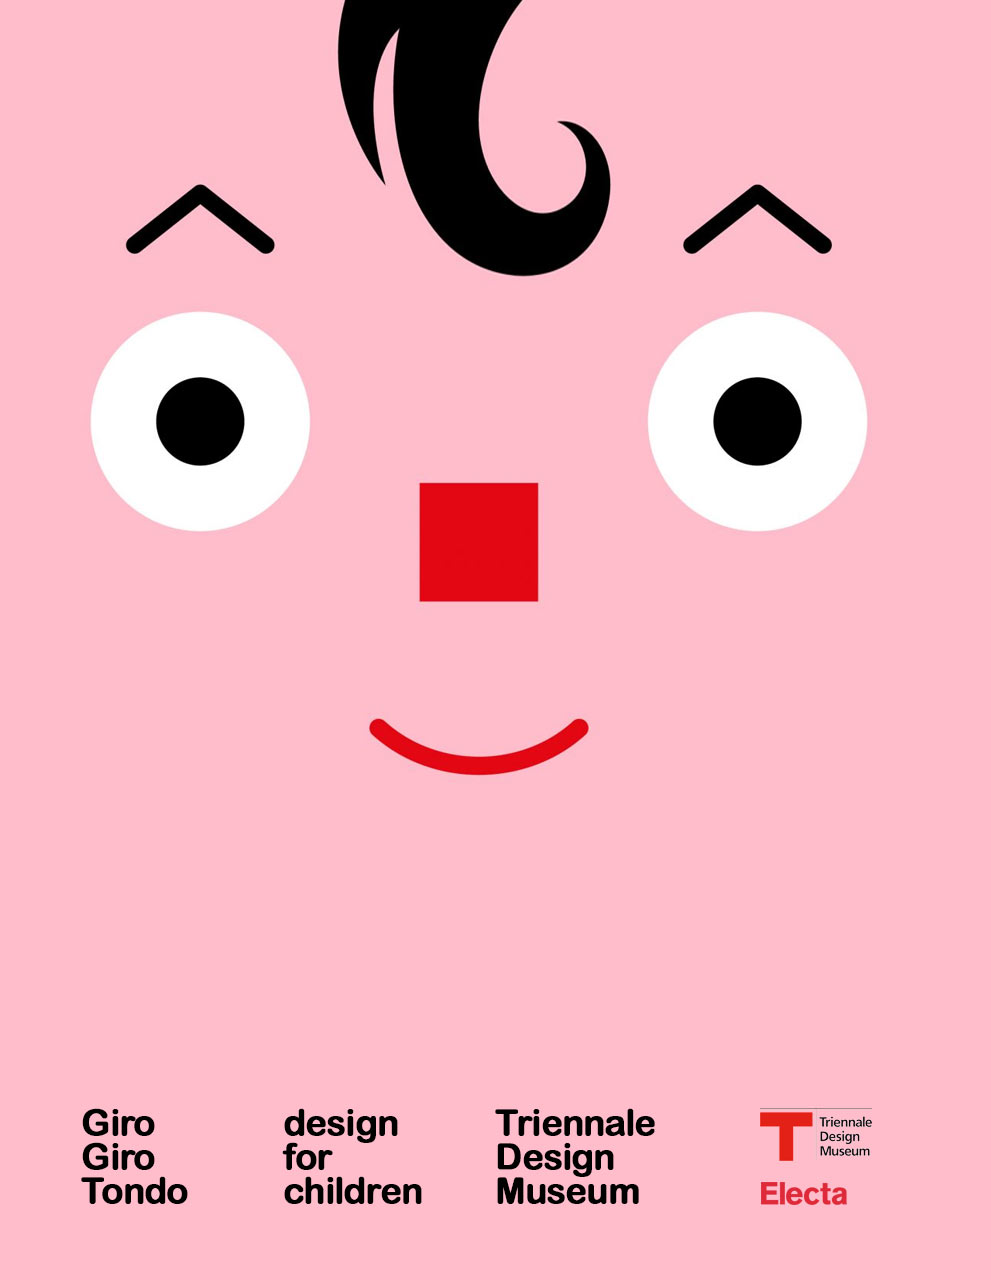 Giro Giro Tondo Design for Children